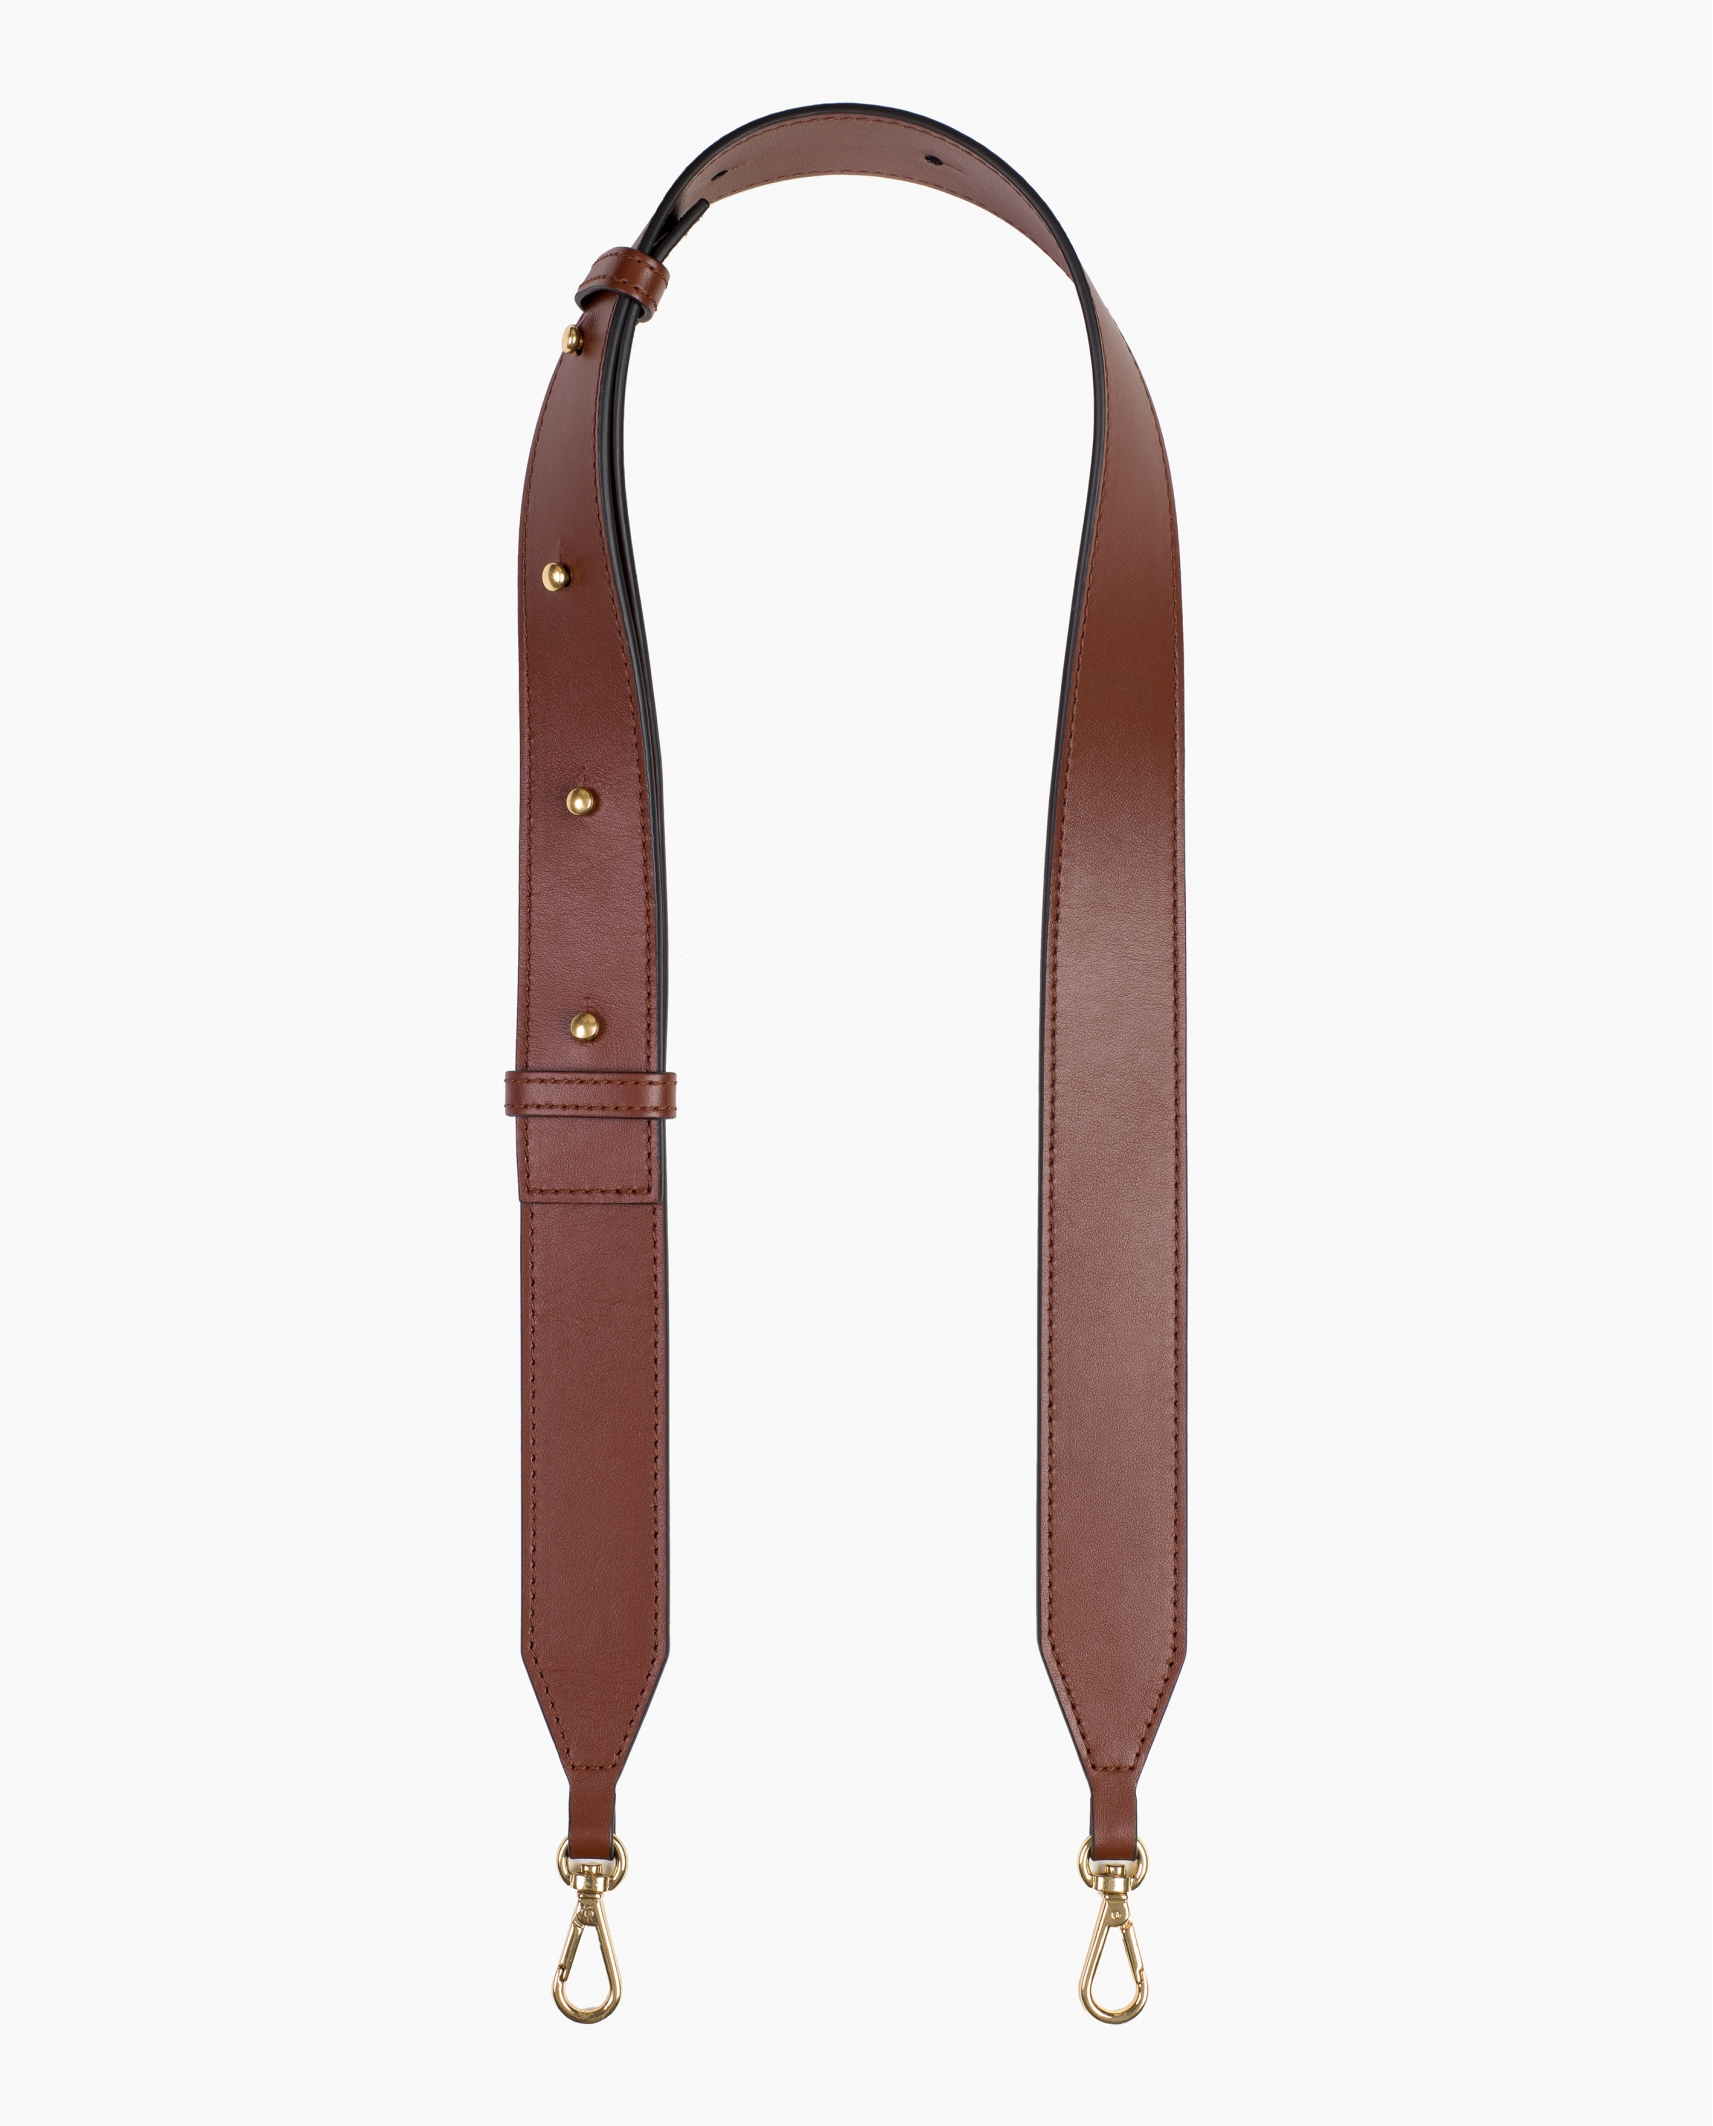 LARGE STRAP WOODY